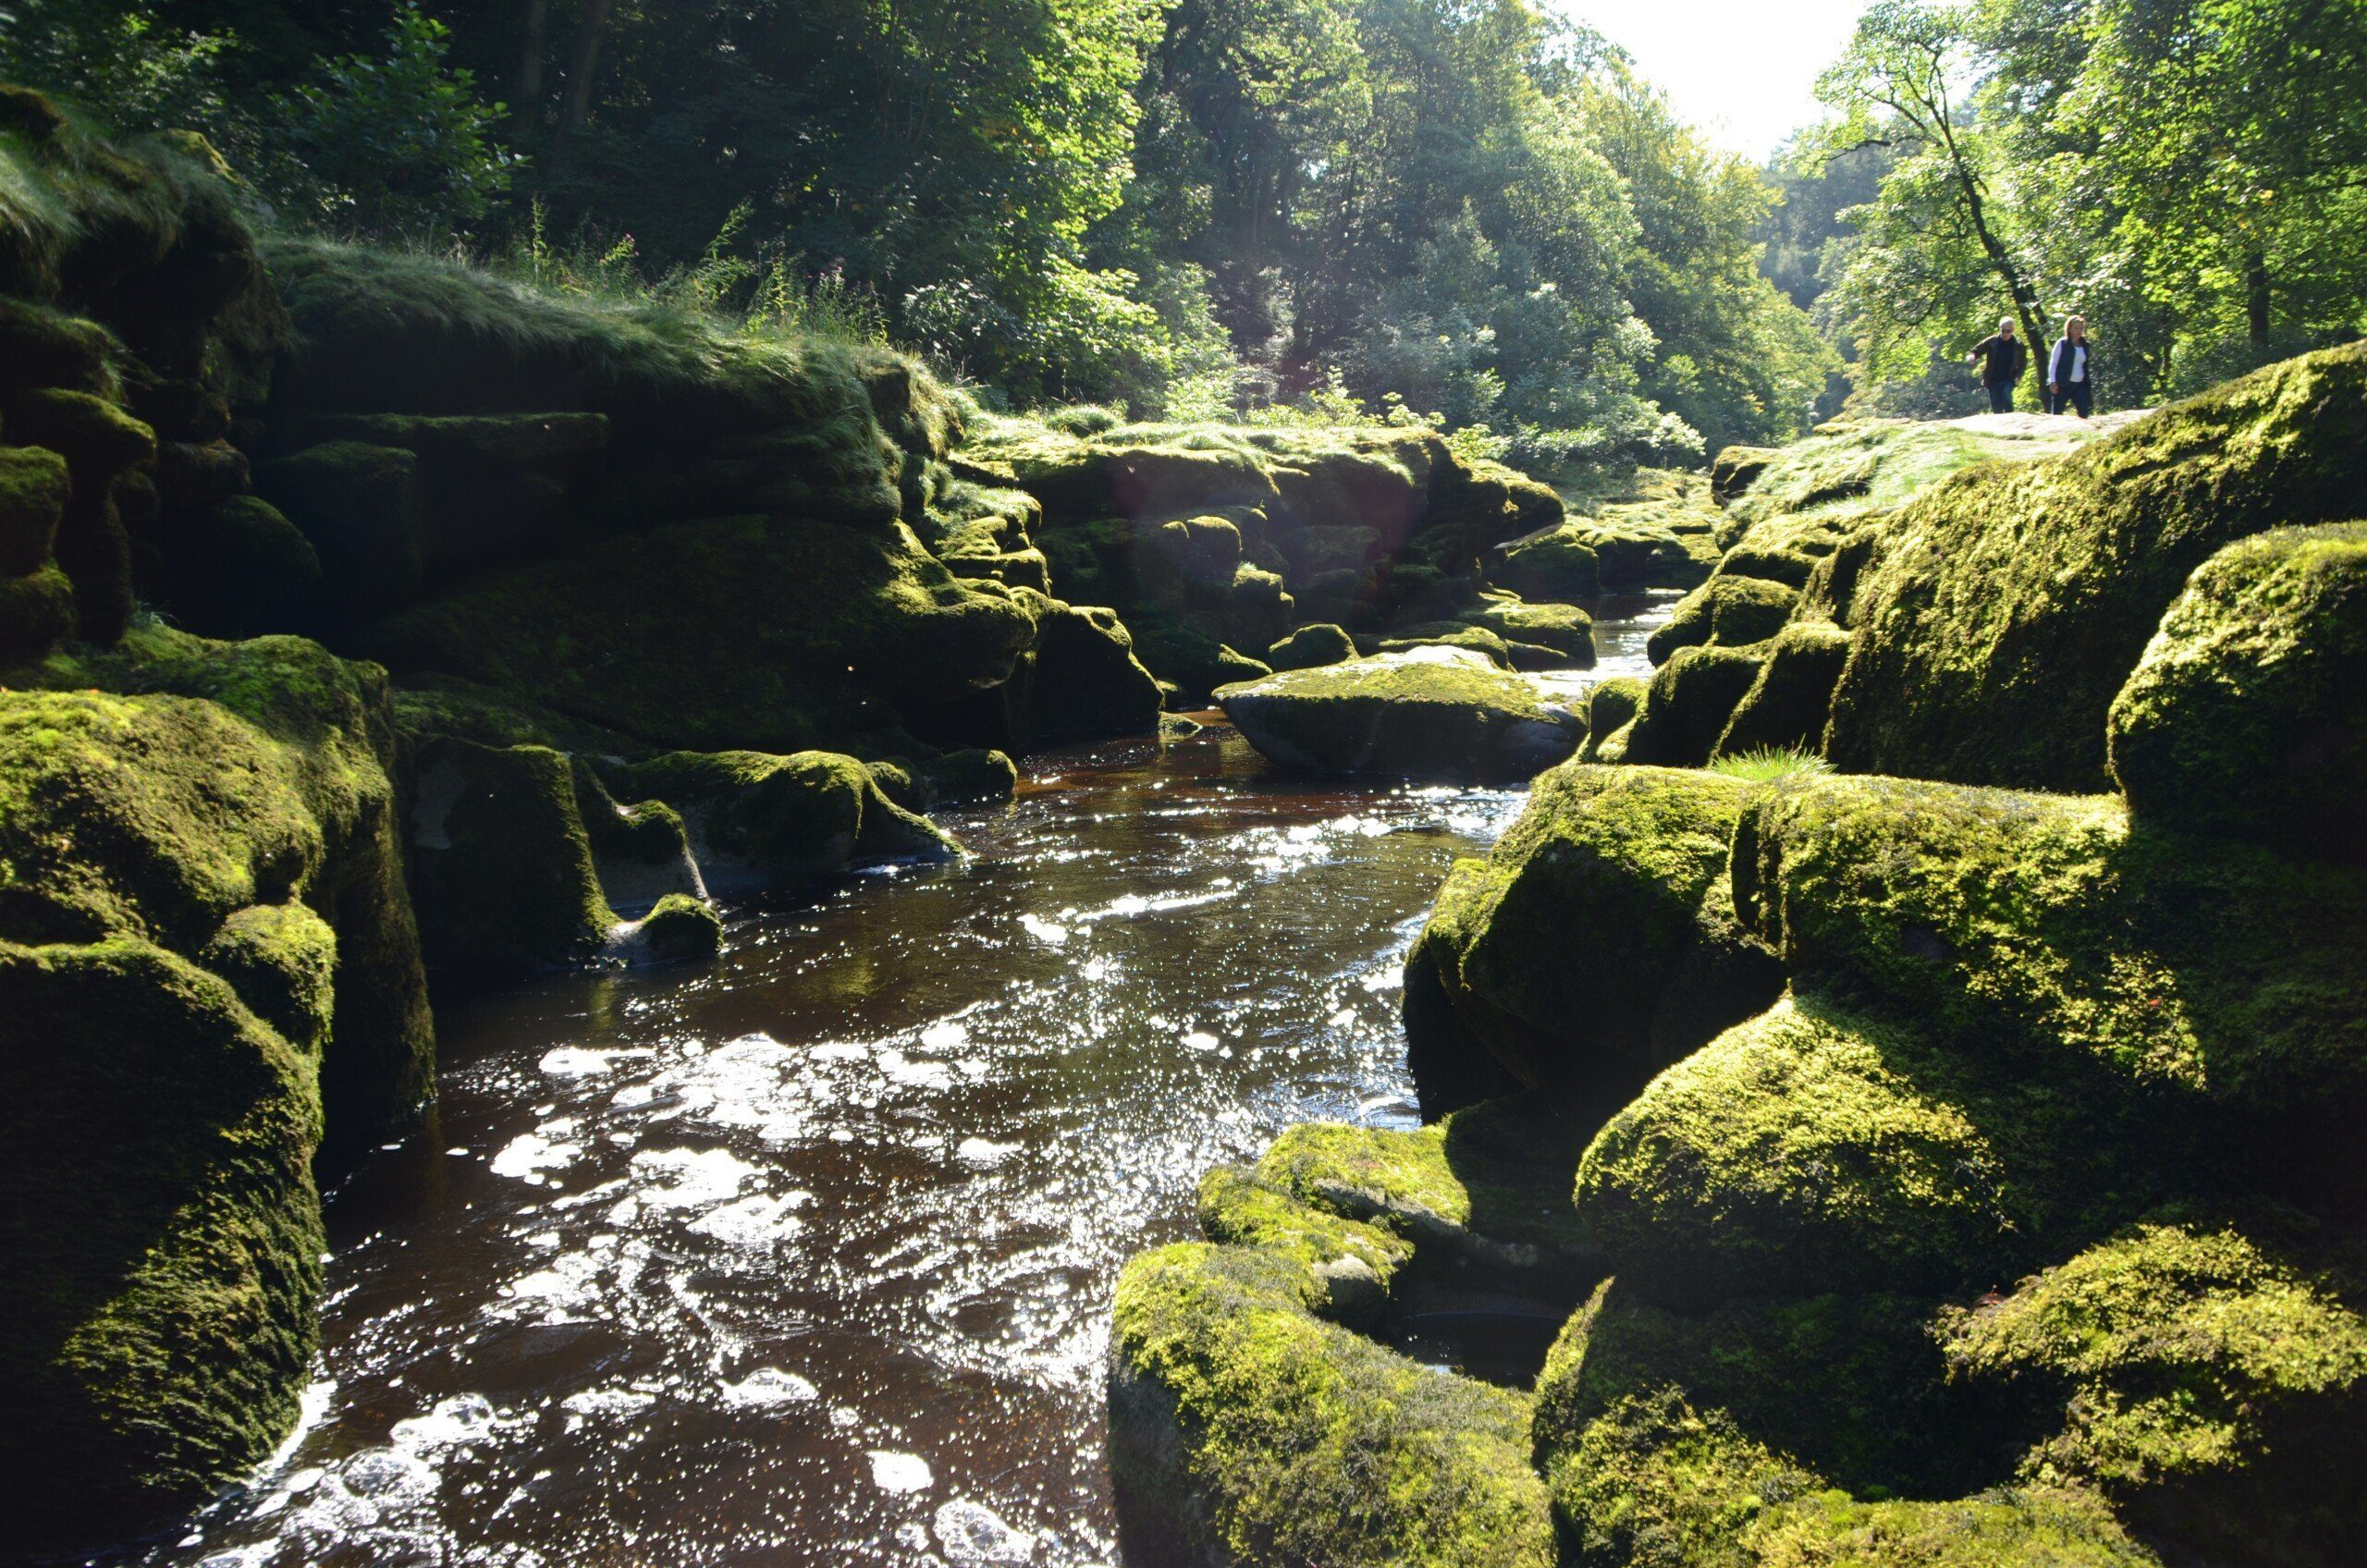 DALES WAY Shot of mossy rocks by a section of river known as the Strid